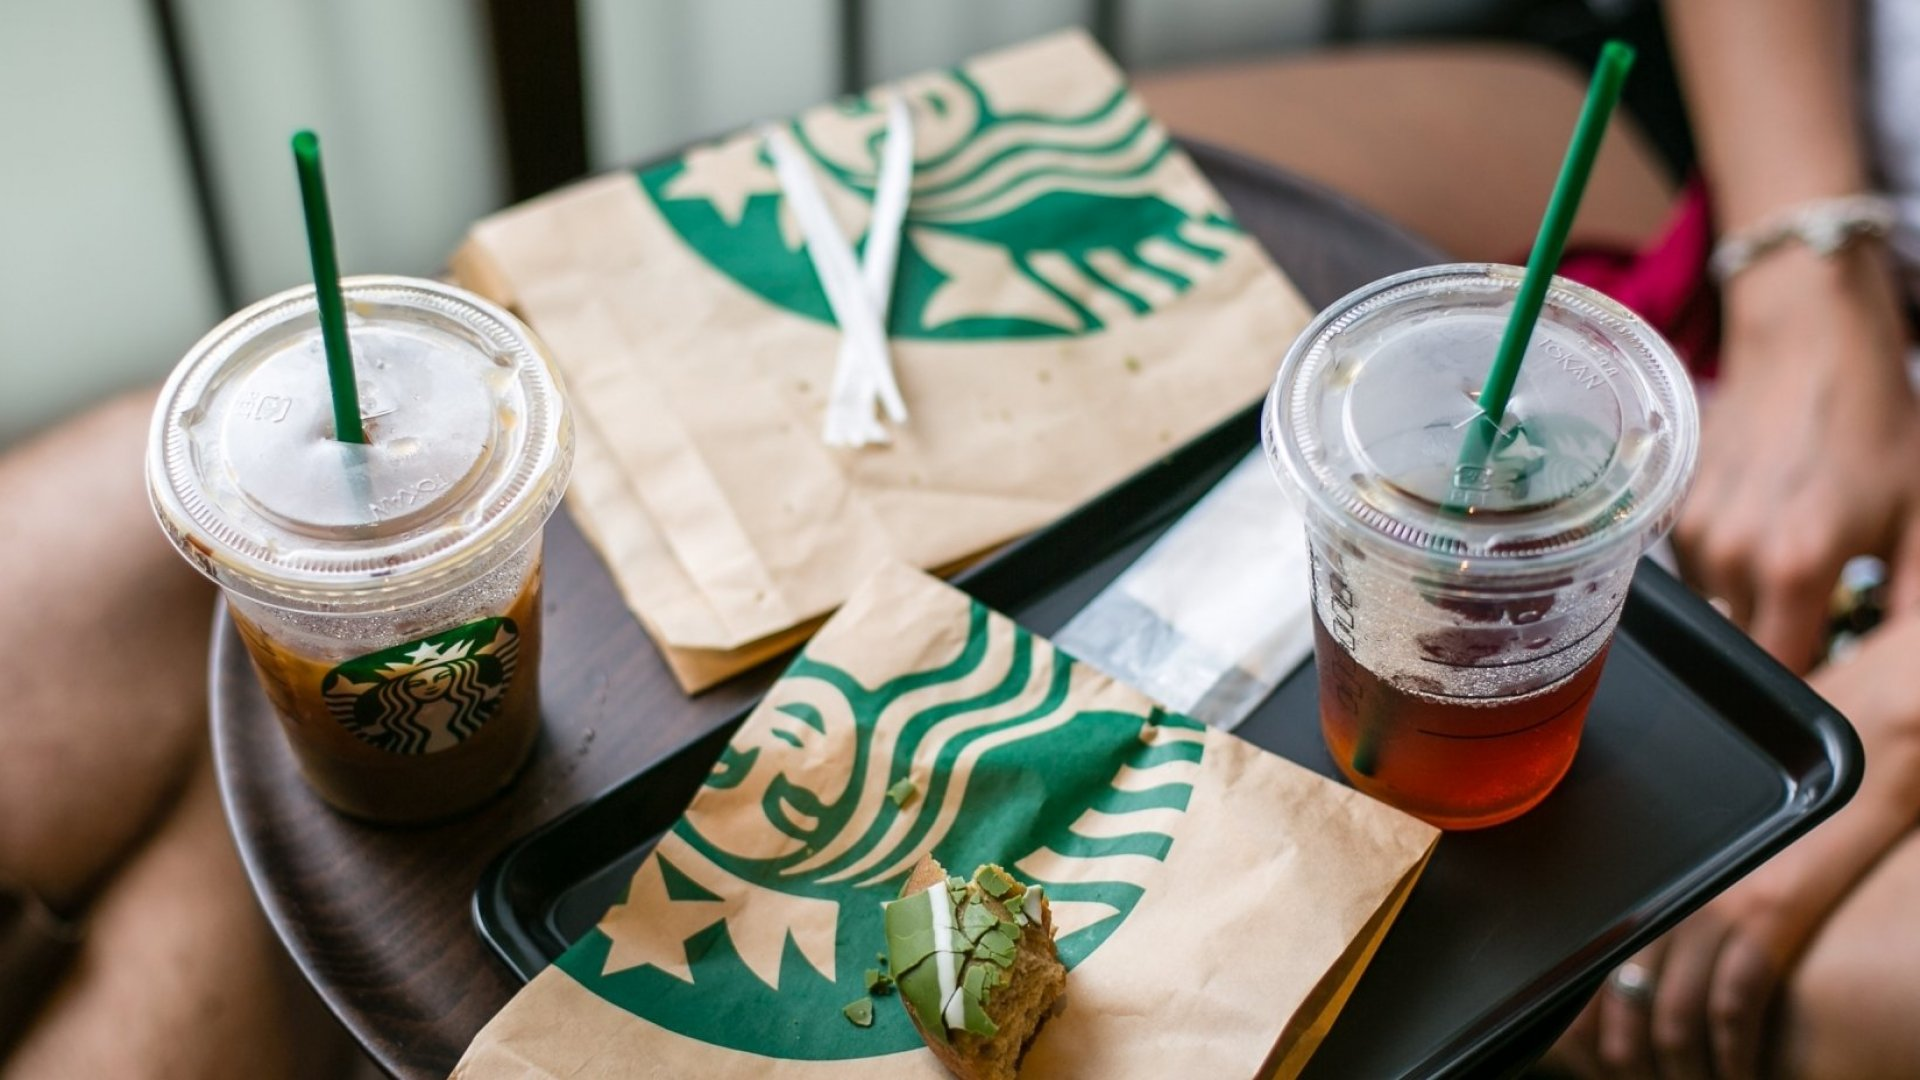 A Starbucks Barista Asked Me This 1 Simple Question, and Using It May Be a Great Way to Boost Your Sales